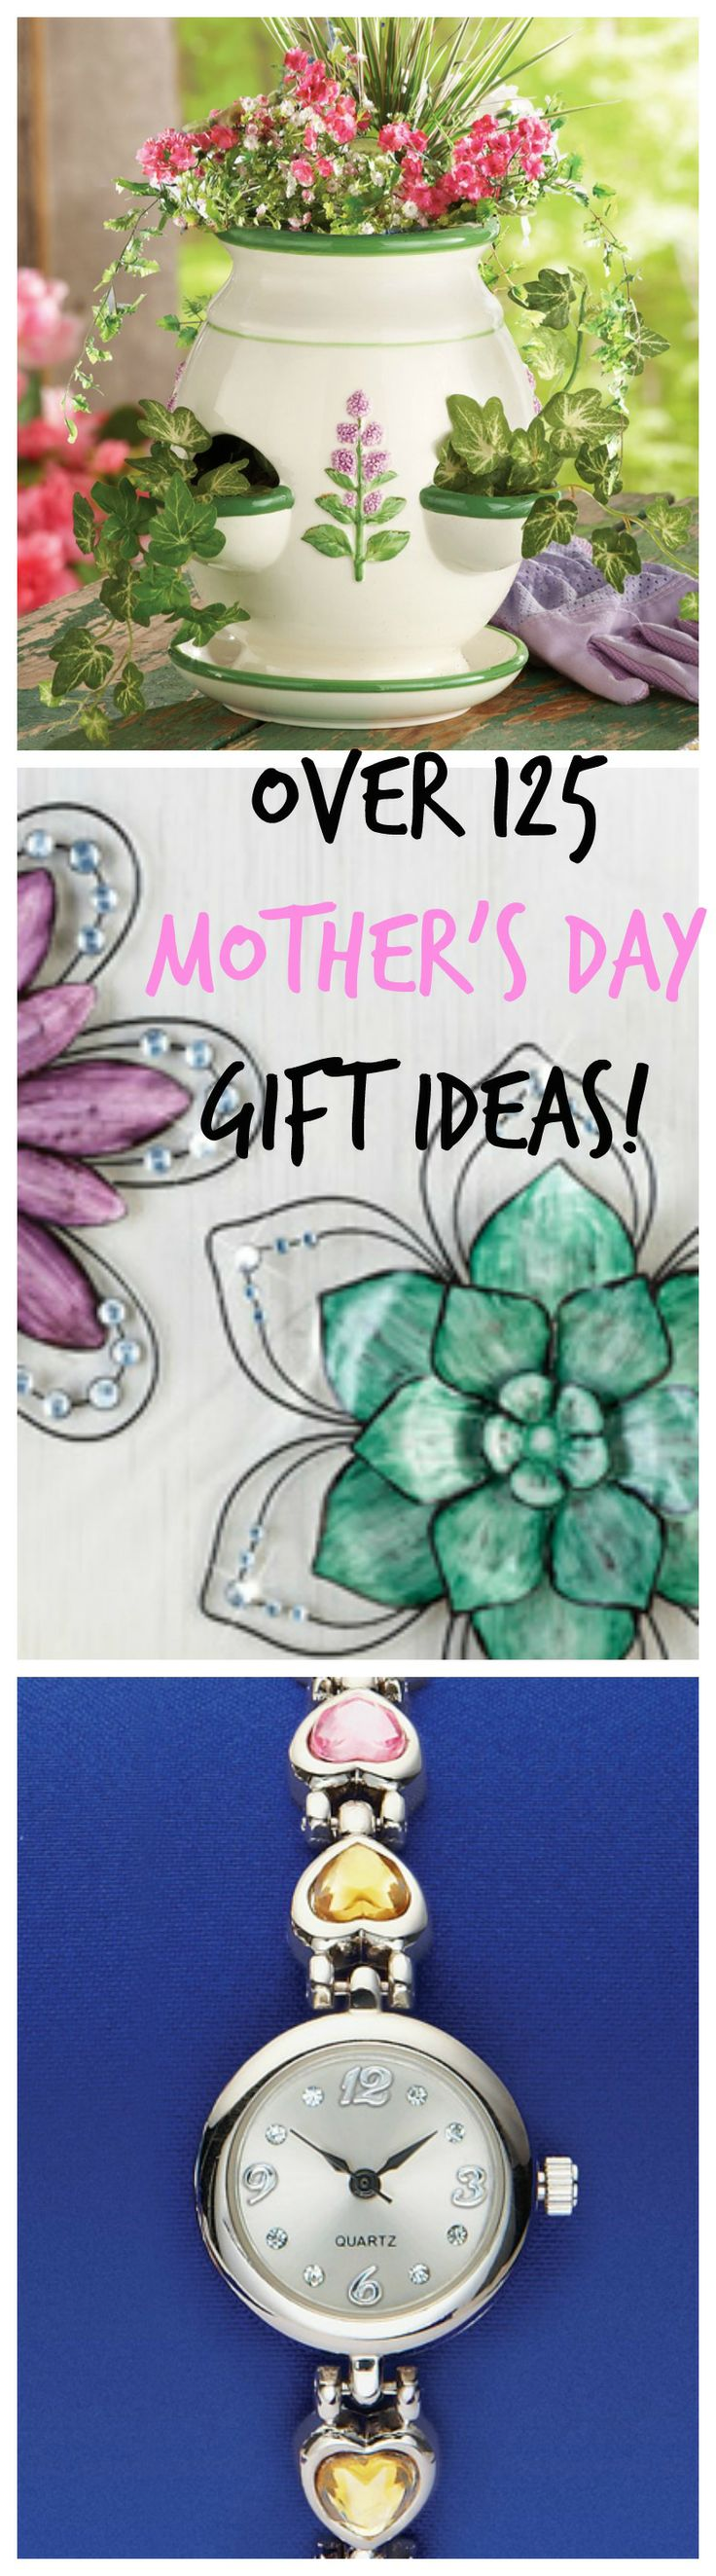 25 best Gifts for Mom images on Pinterest | Collections etc, Gifts ...